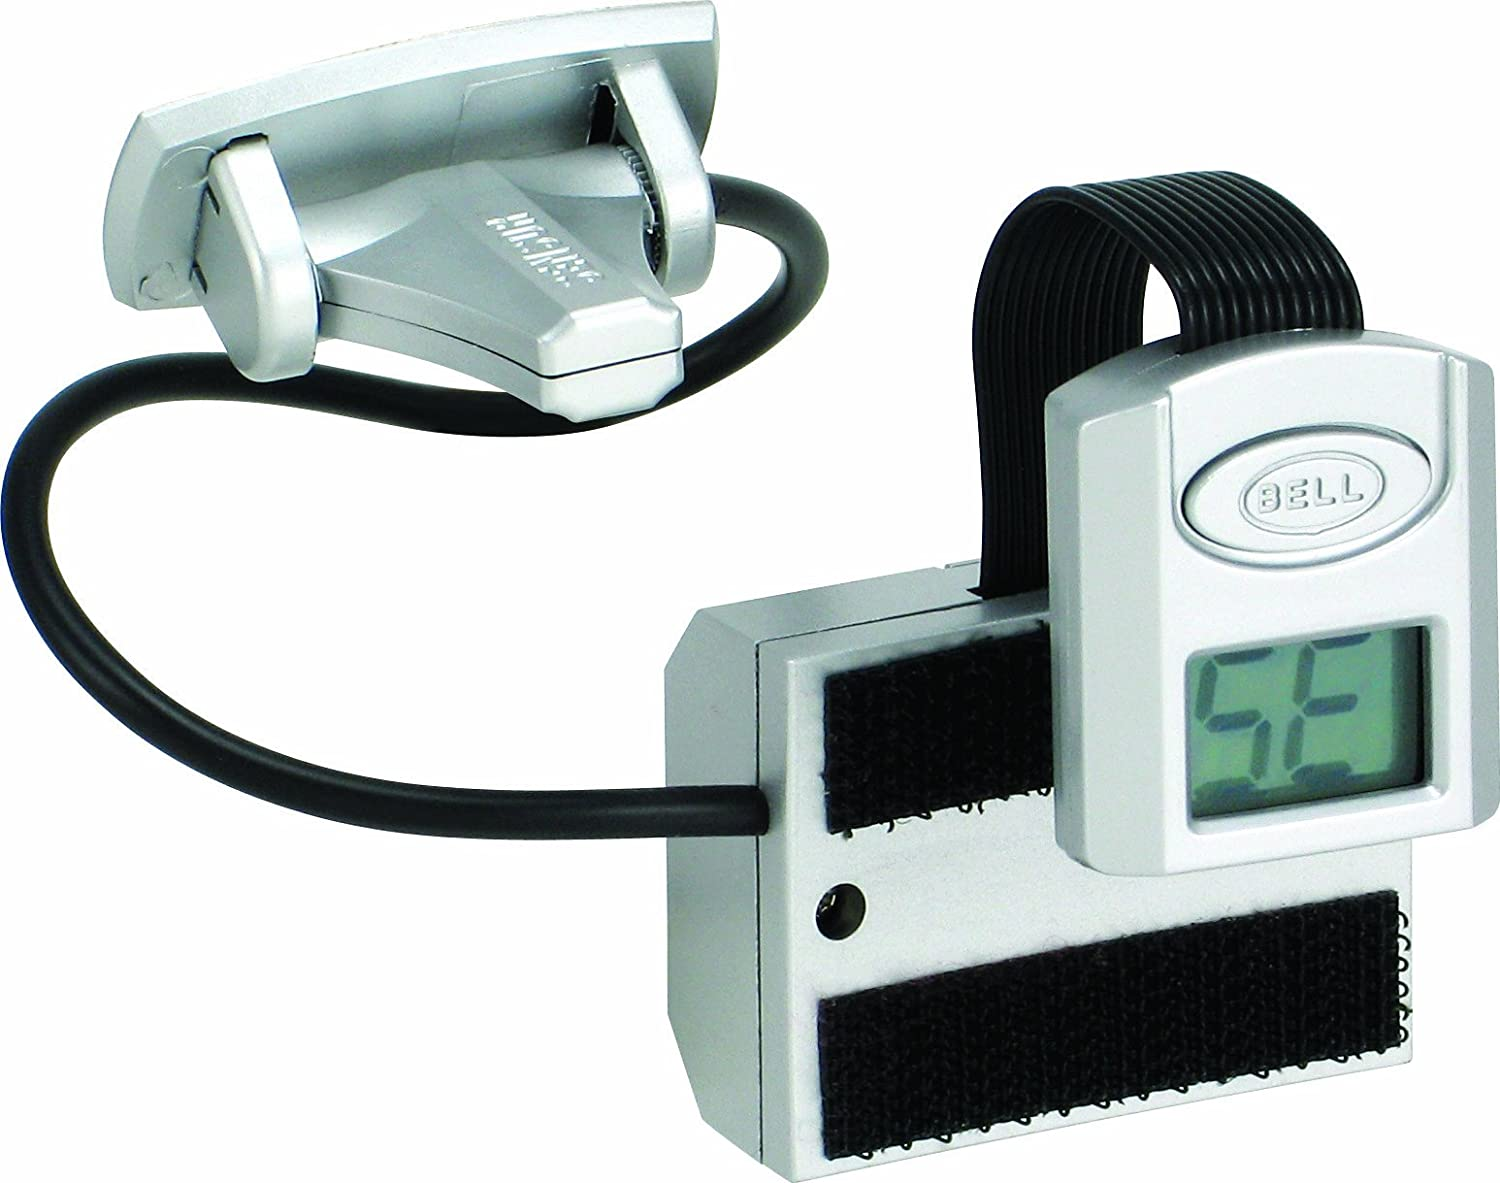 Amazon.com: Bell Automotive 22-1-29001-8 Digital Compass and Mirror Mount:  Automotive